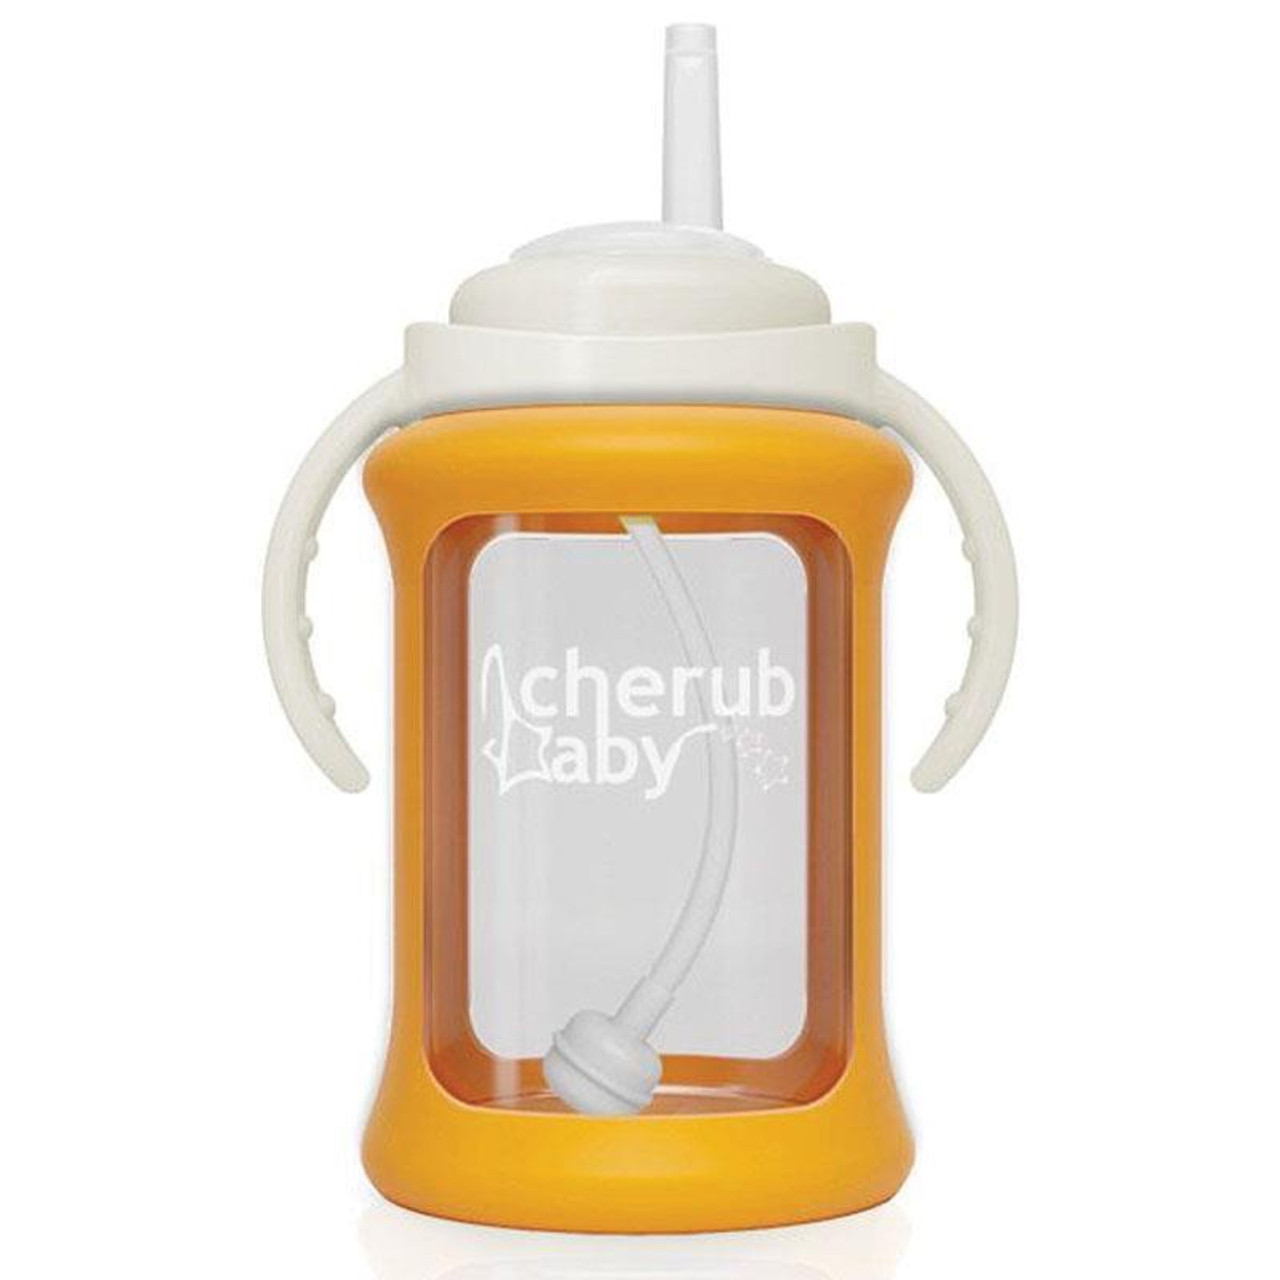 Cherub Baby Wide Neck Glass Straw Cup 240ml ORANGE at Baby Barn Discounts Cherub Baby wide-neck glass non spill straw cups now come with a patented silicone sleeve with built in shock absorbers that help to prevent breakage when dropped.